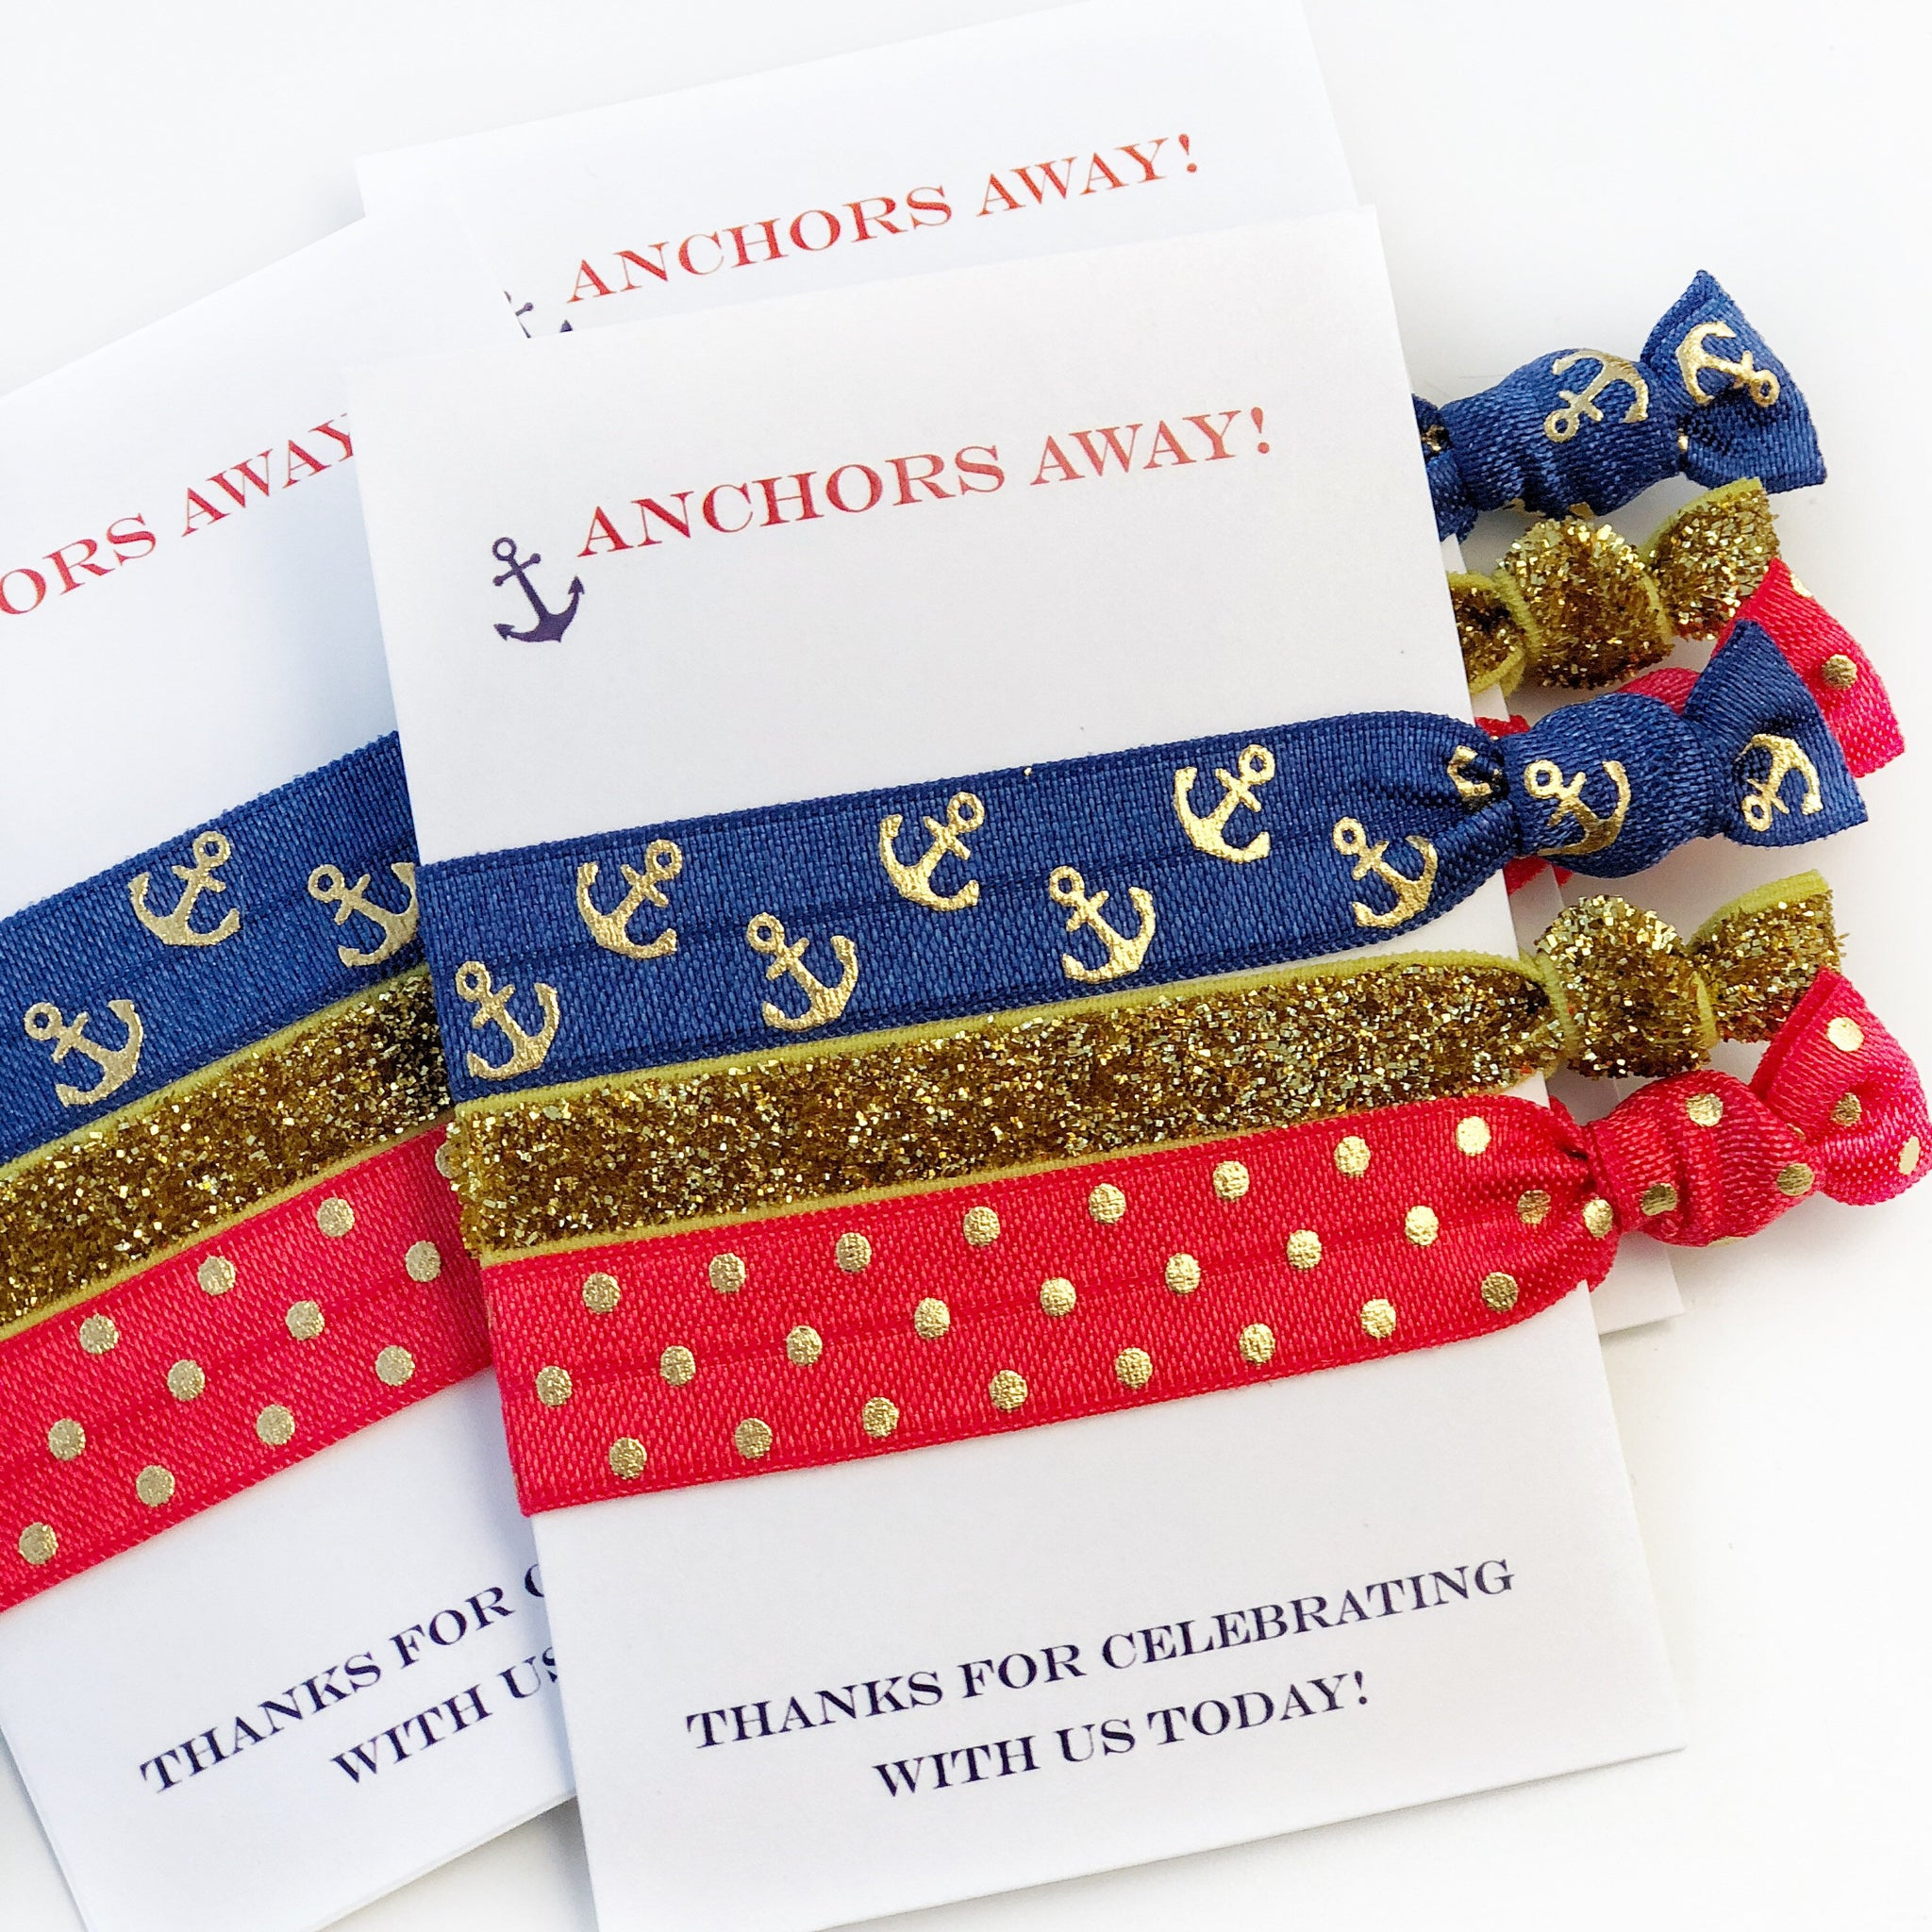 Nautical Party Favors - Nautical Party Decor - @PlumPolkaDot